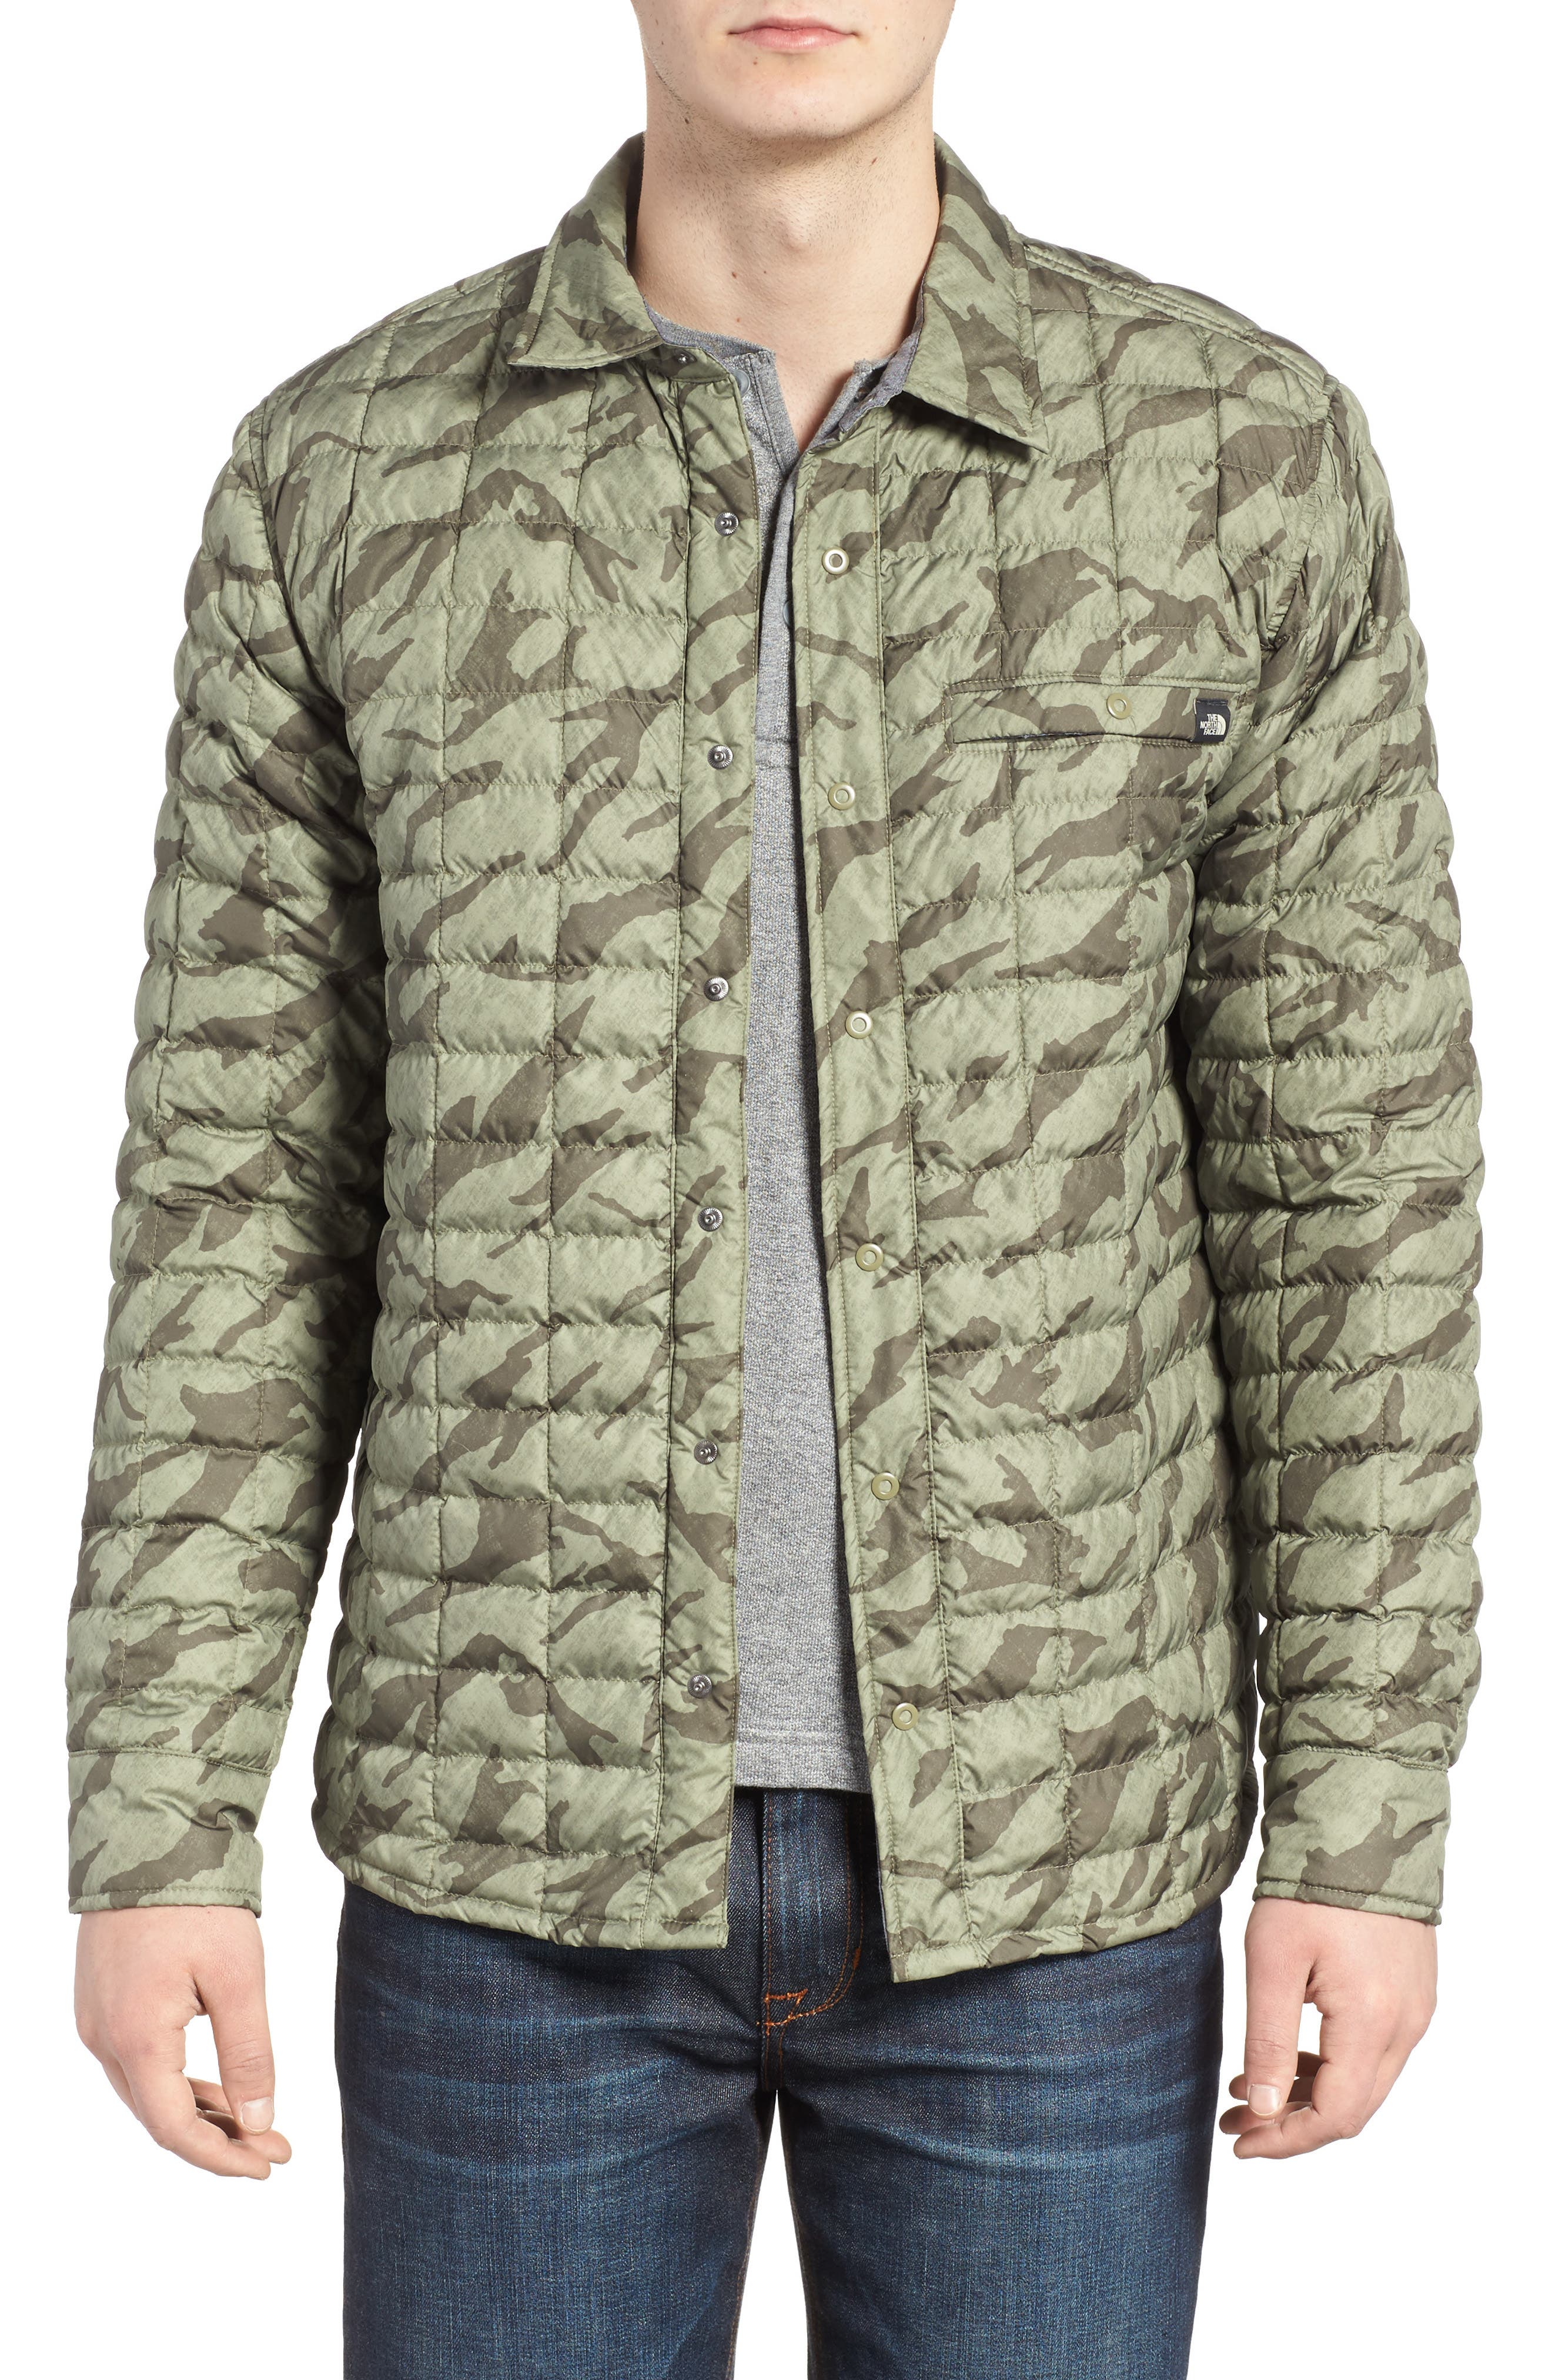 Reyes ThermoBall Shirt Jacket,                             Main thumbnail 1, color,                             Deep Lichen Green